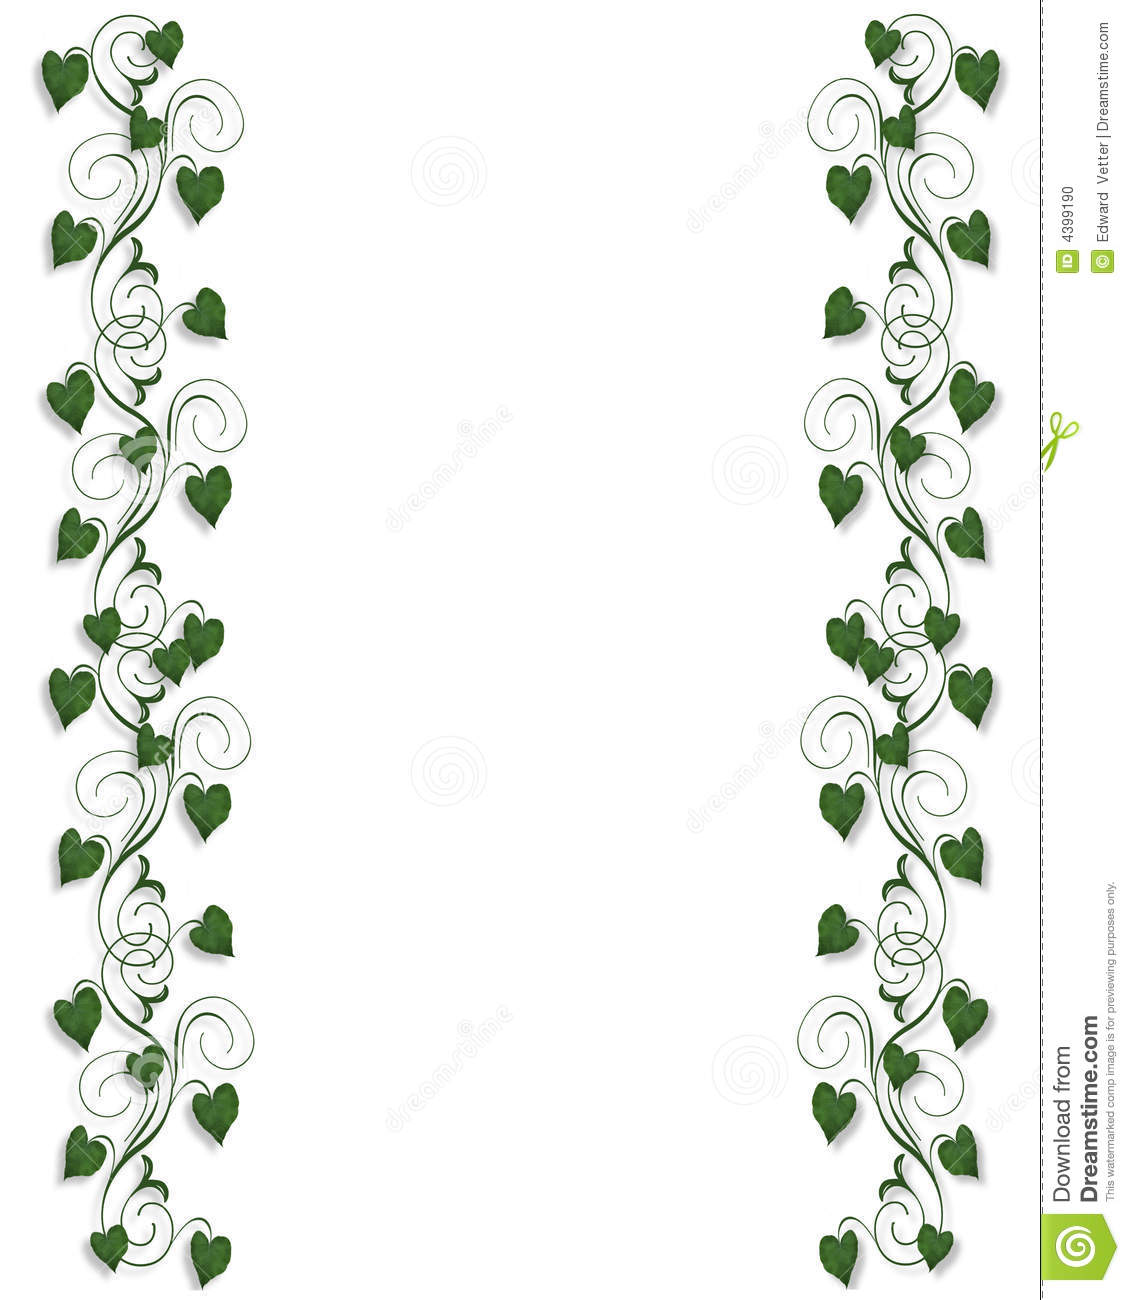 ivy leaf border clipart clipart suggest alpha kappa alpha clip art sisterhood alpha kappa alpha clip art leadership